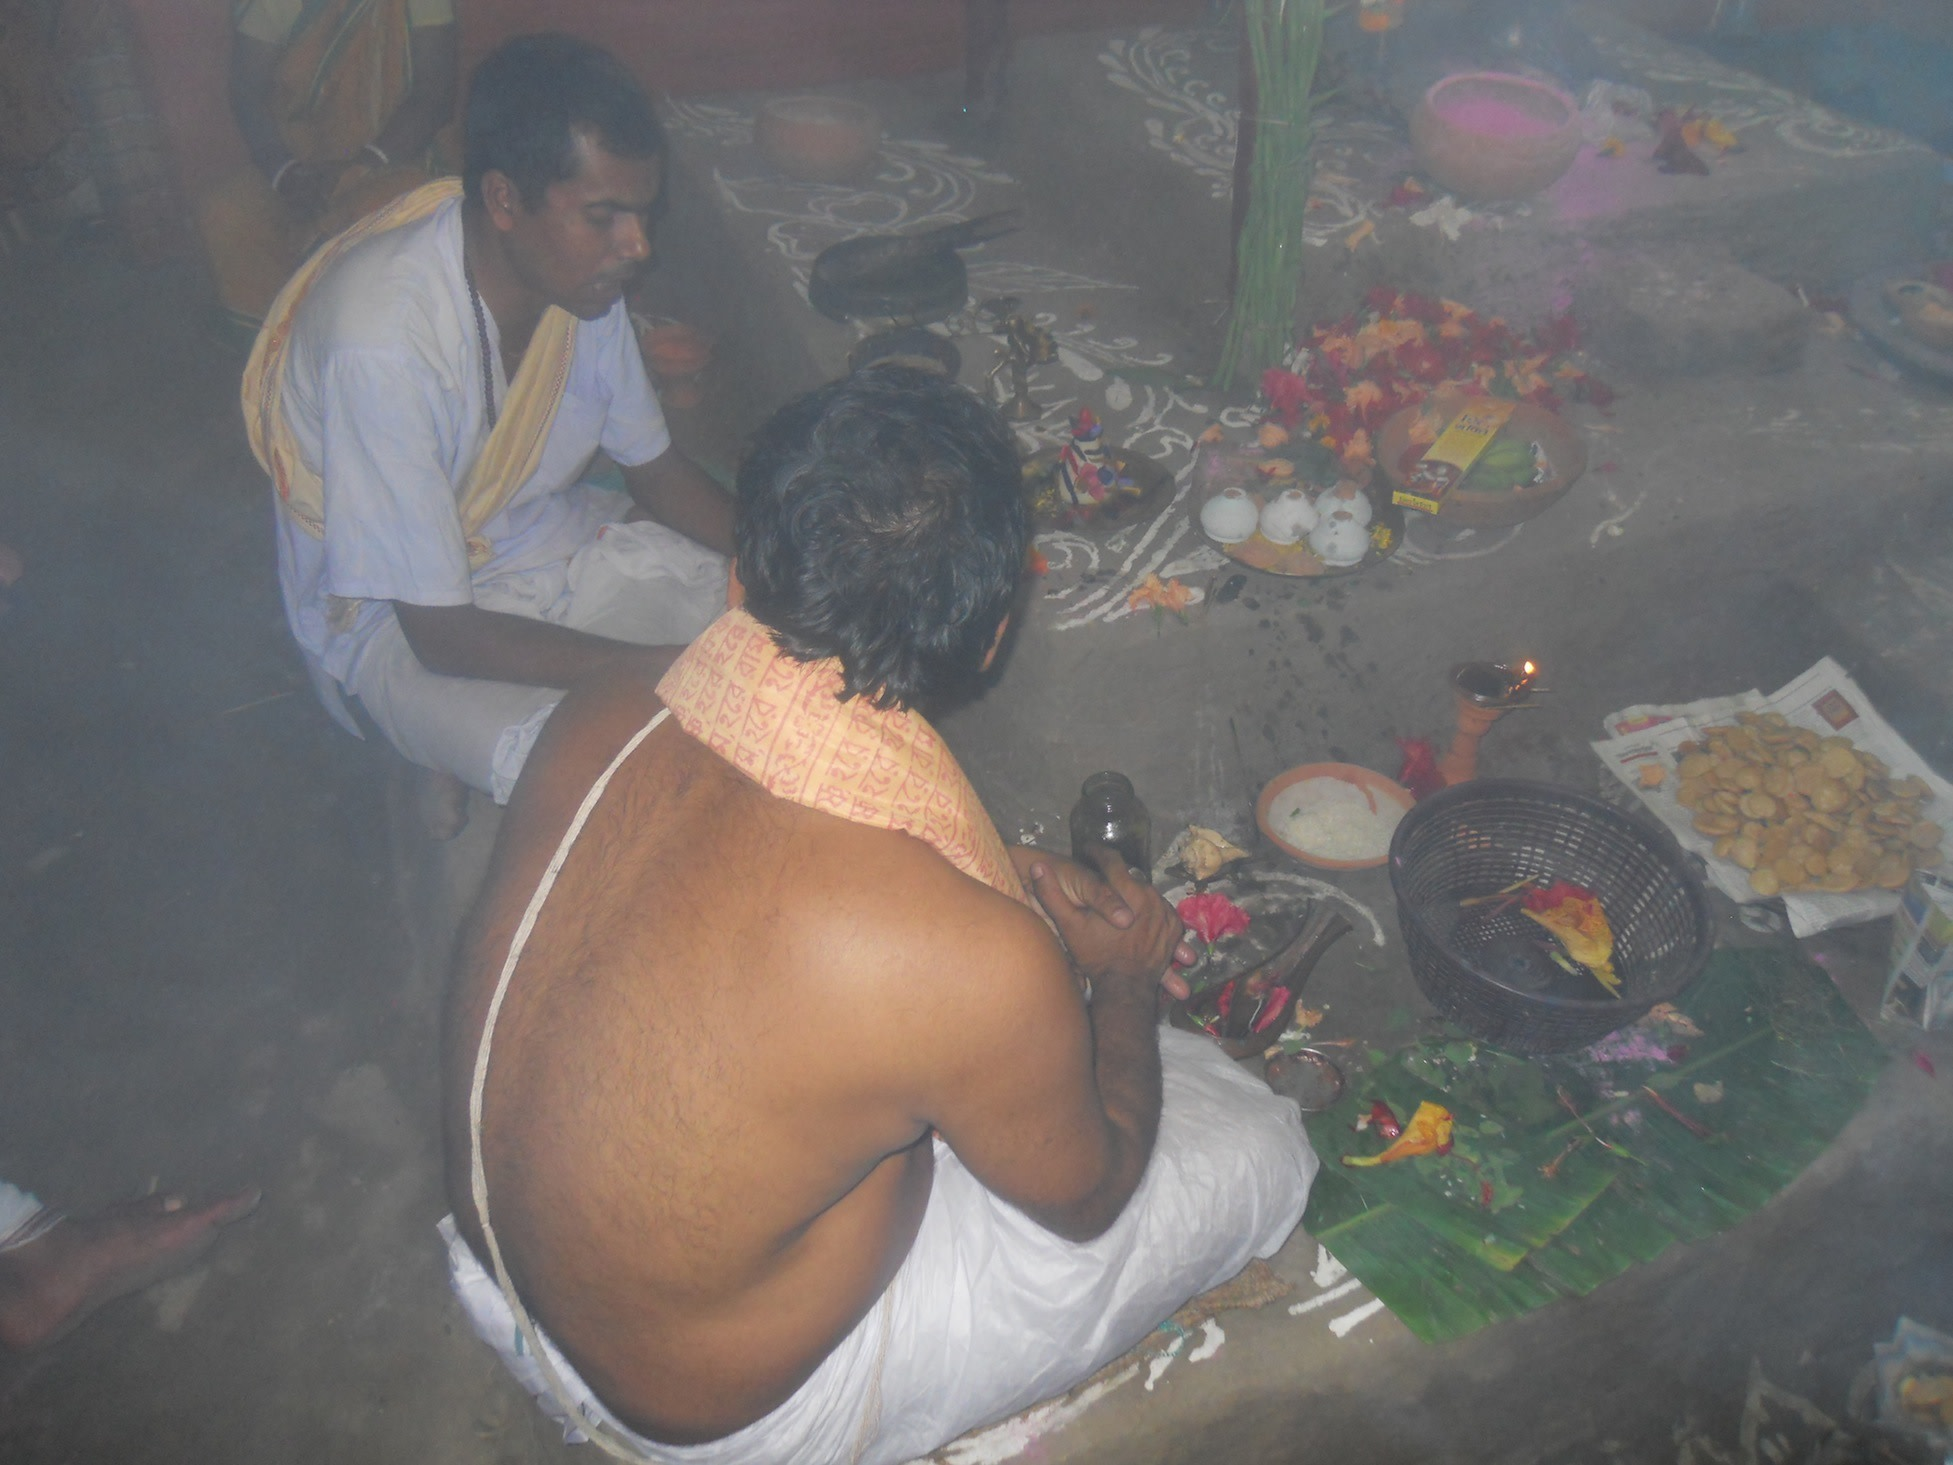 Priests chanting the melodic Hindu Sanskrit mantras as a form of 'Bhakti' (devotional worship) to Lord Krishna.